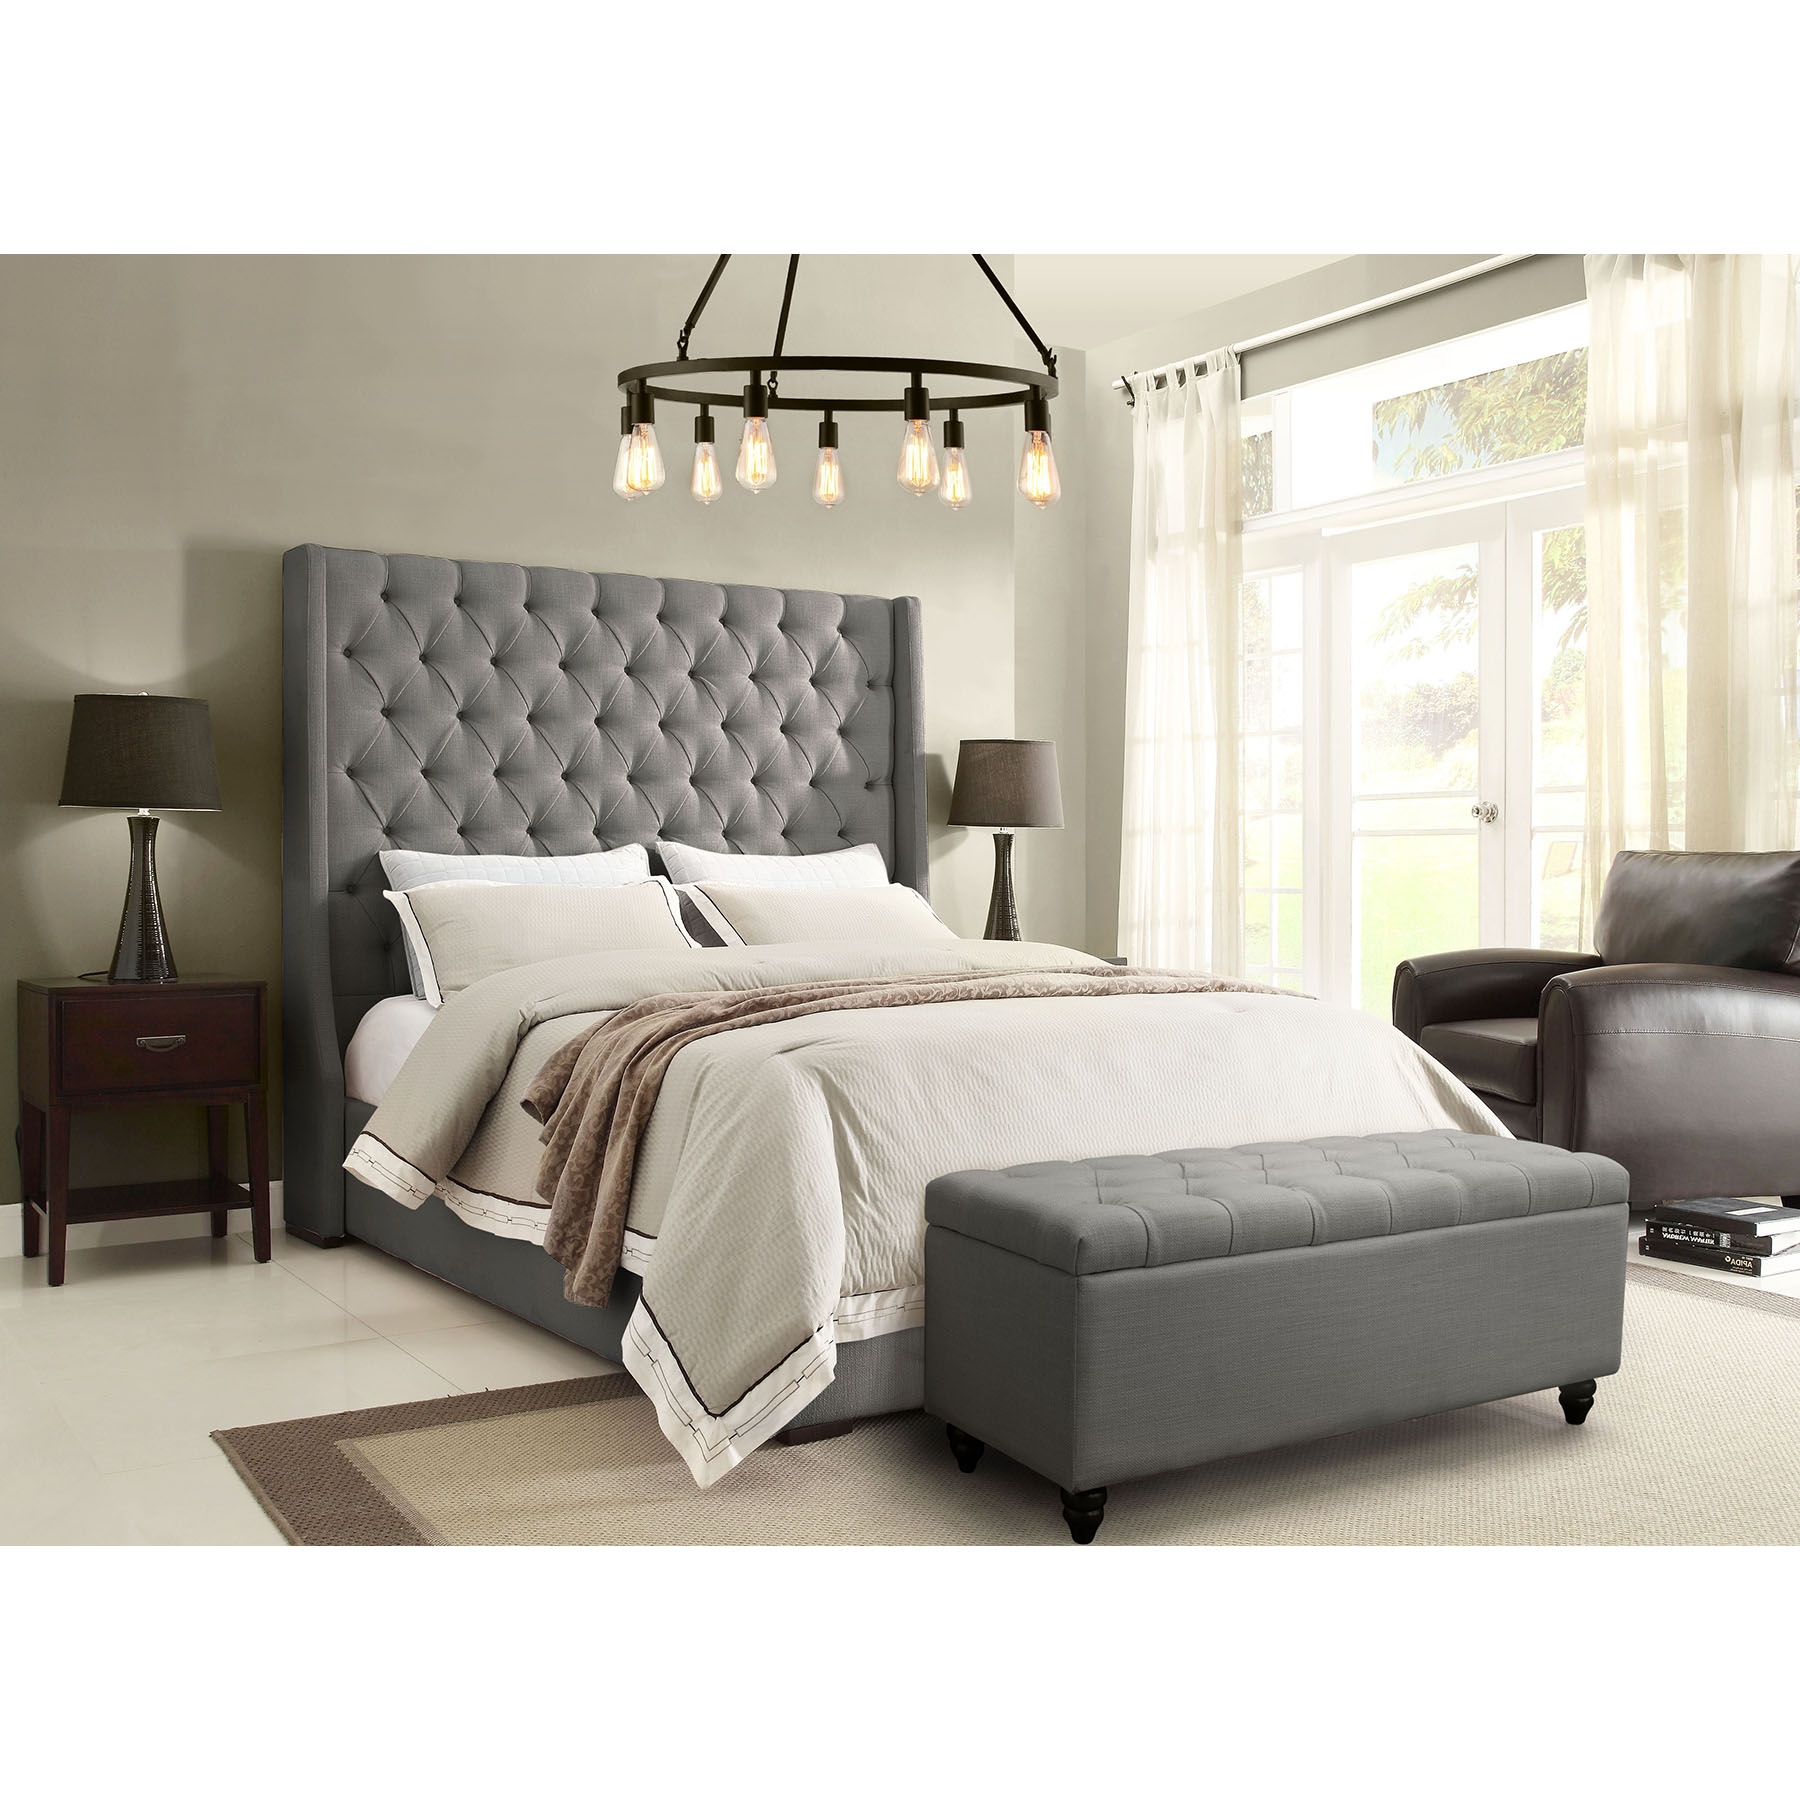 Park Avenue Platform Bed - Vintage Wing, Tufted, Gray